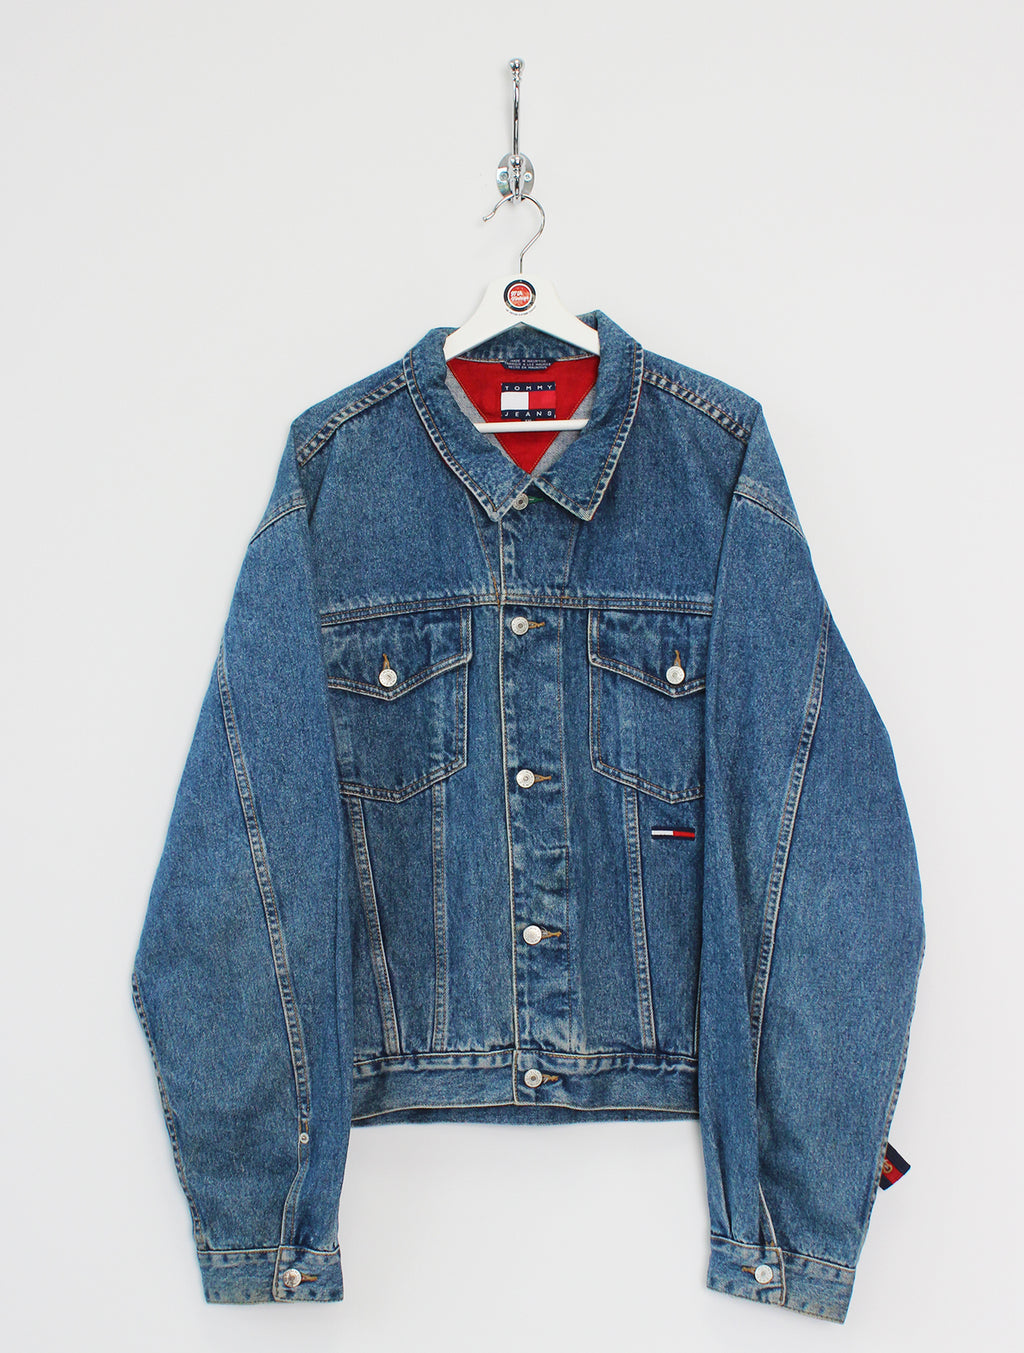 Tommy Hilfiger Denim Jacket (XXL)